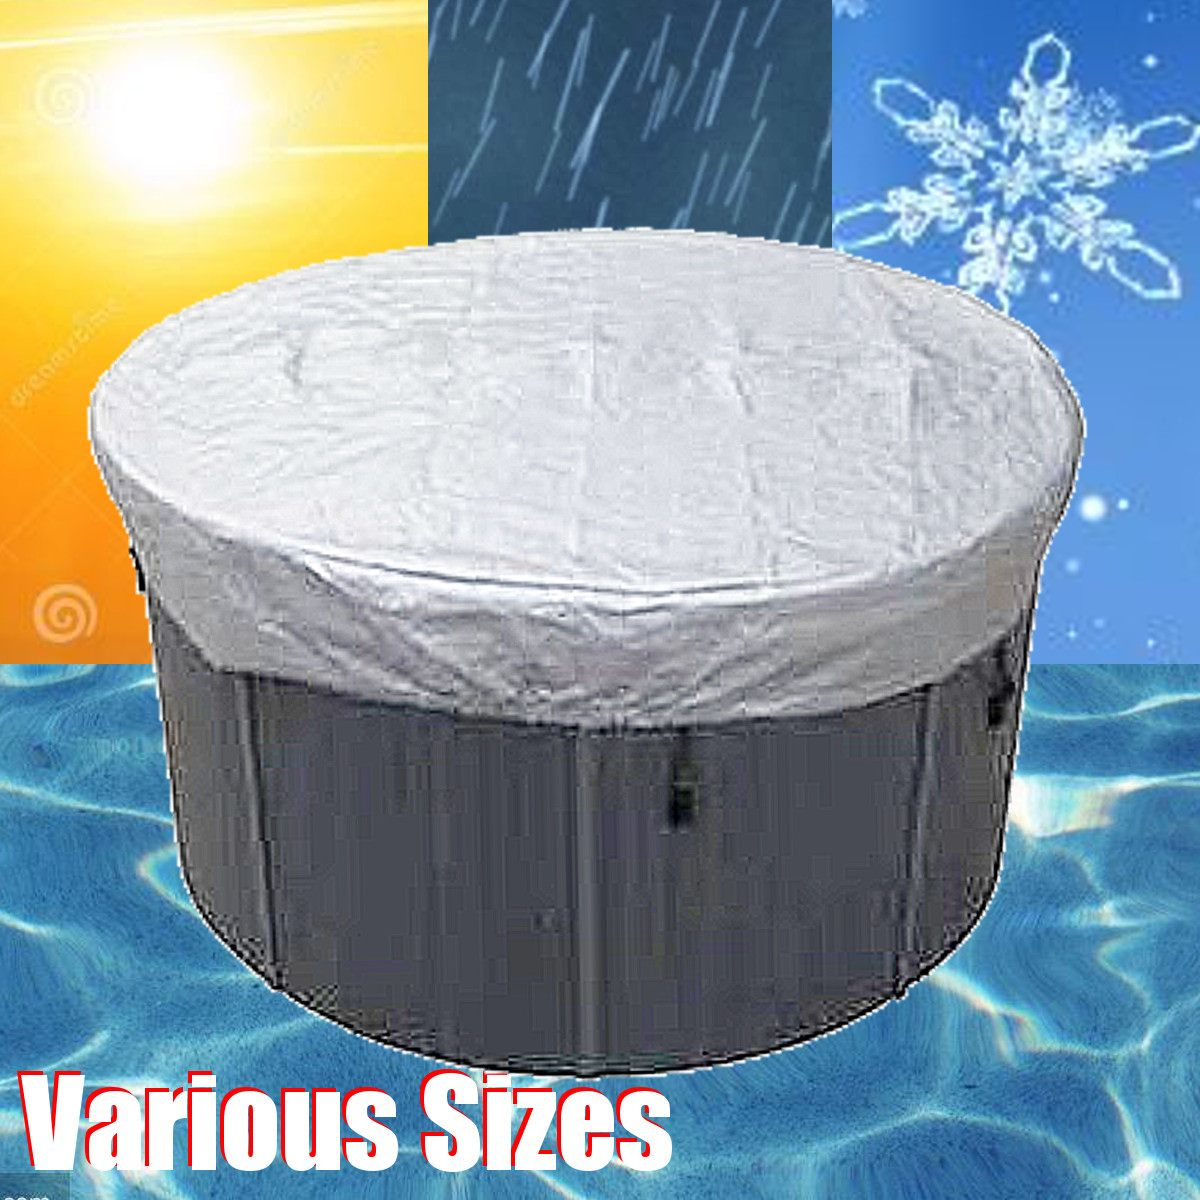 13 Sizes Universal Round Tub Cover Spa Cap Cover Waterproof Dust Proof UV Proof Cover Protector Jacuzzis Hotspring Spa Cubrir